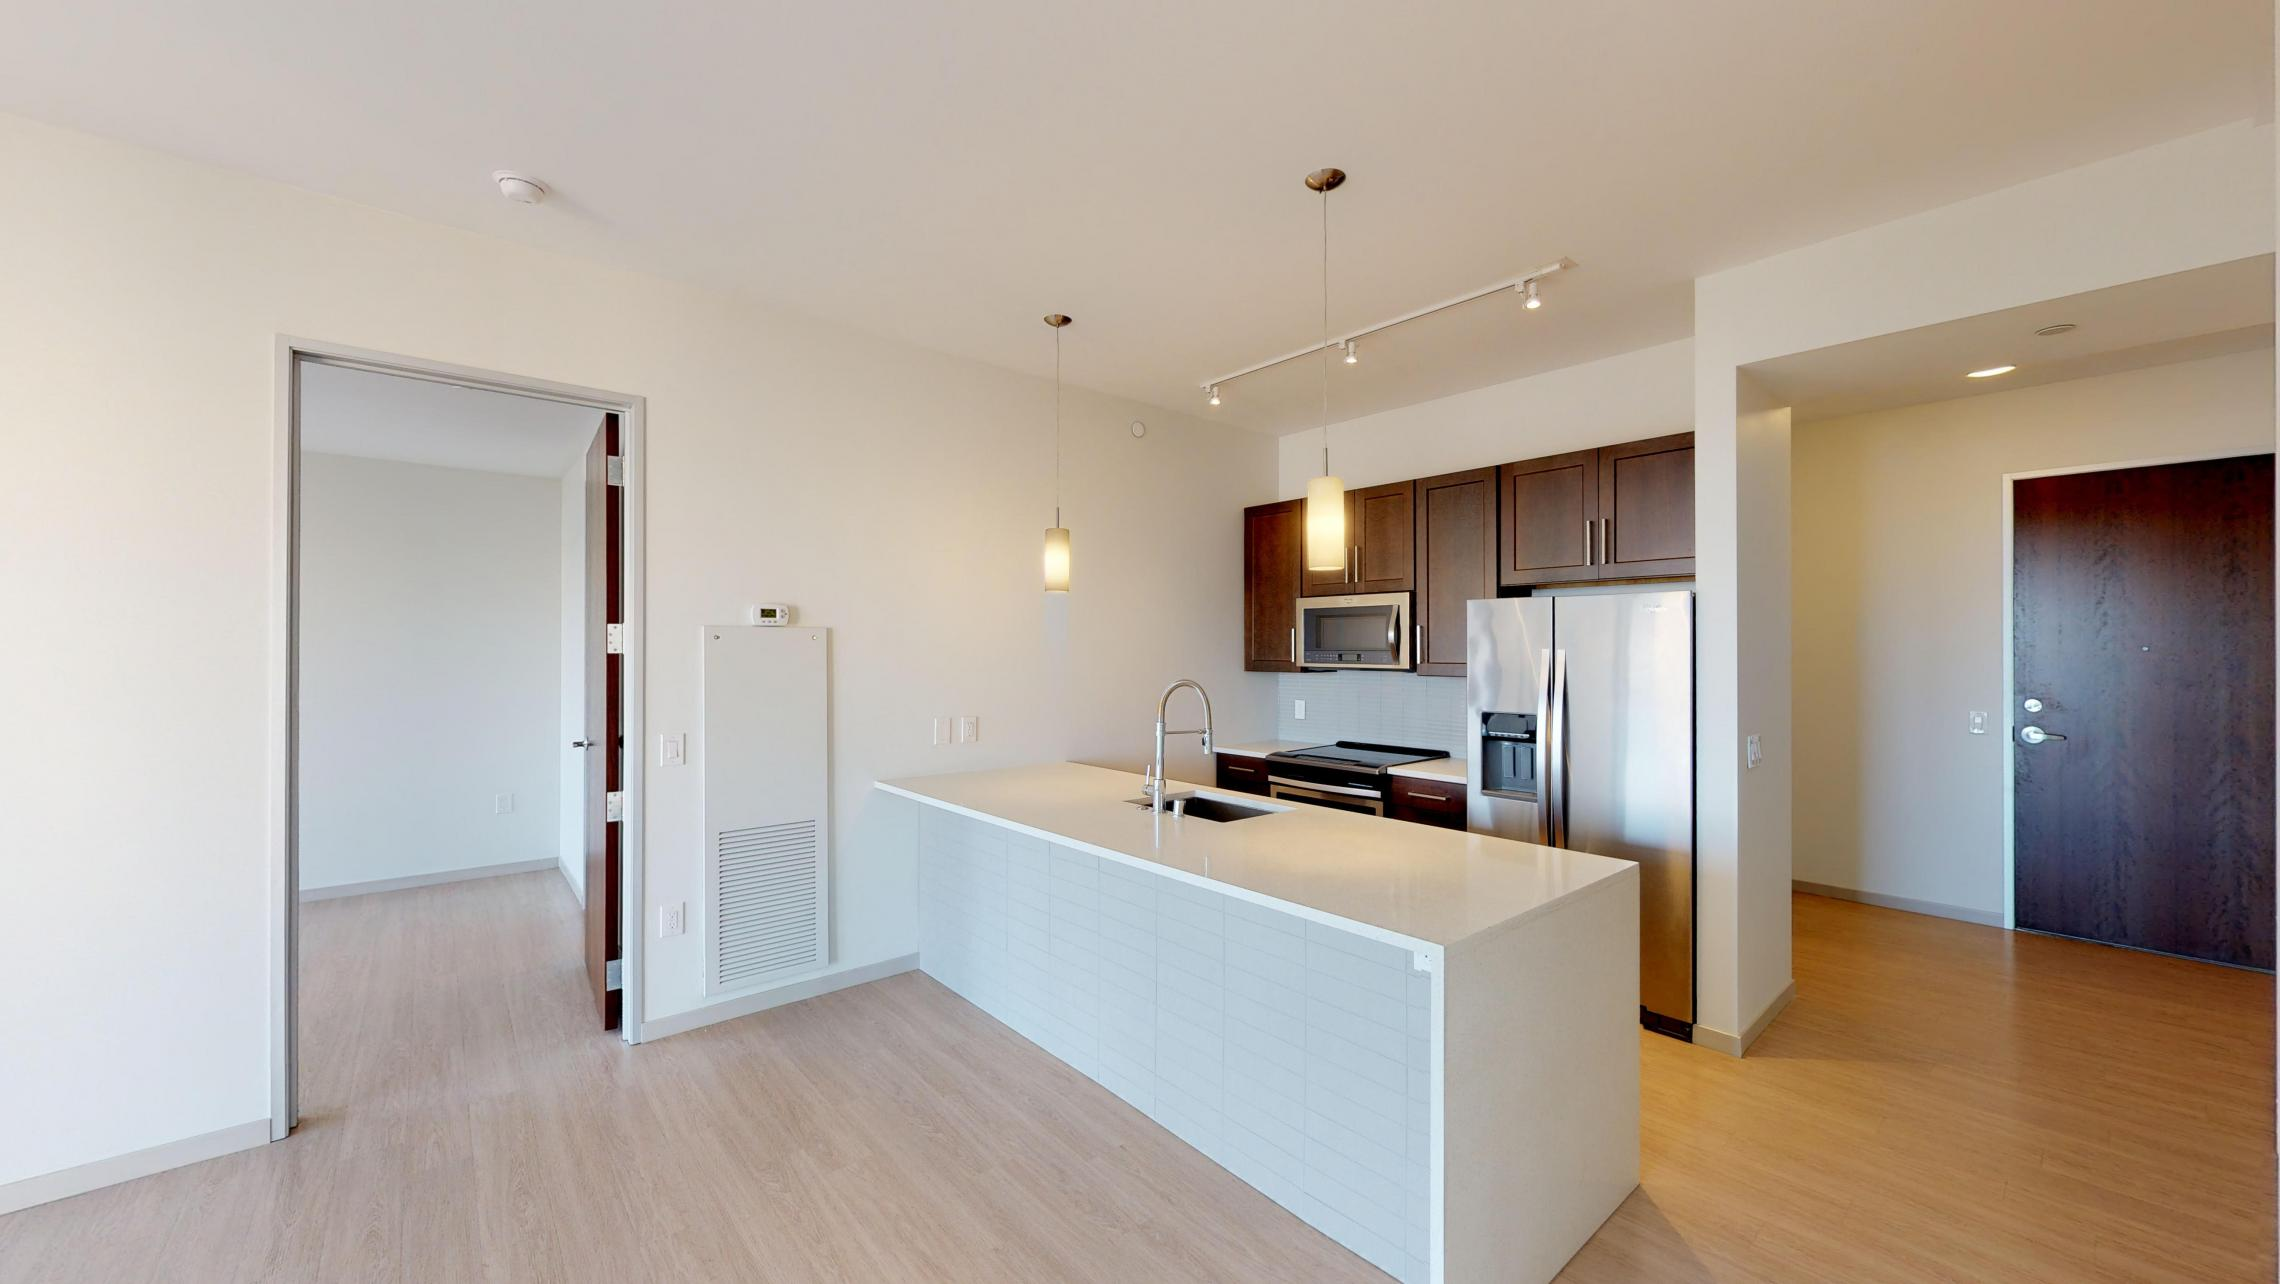 The-Pressman-Apartment-711-One-Bedroom-Lake-View-Downtown-Madison-Luxury-Upscale-Modern-High-Rise-Lifestyle-Concrete-Home